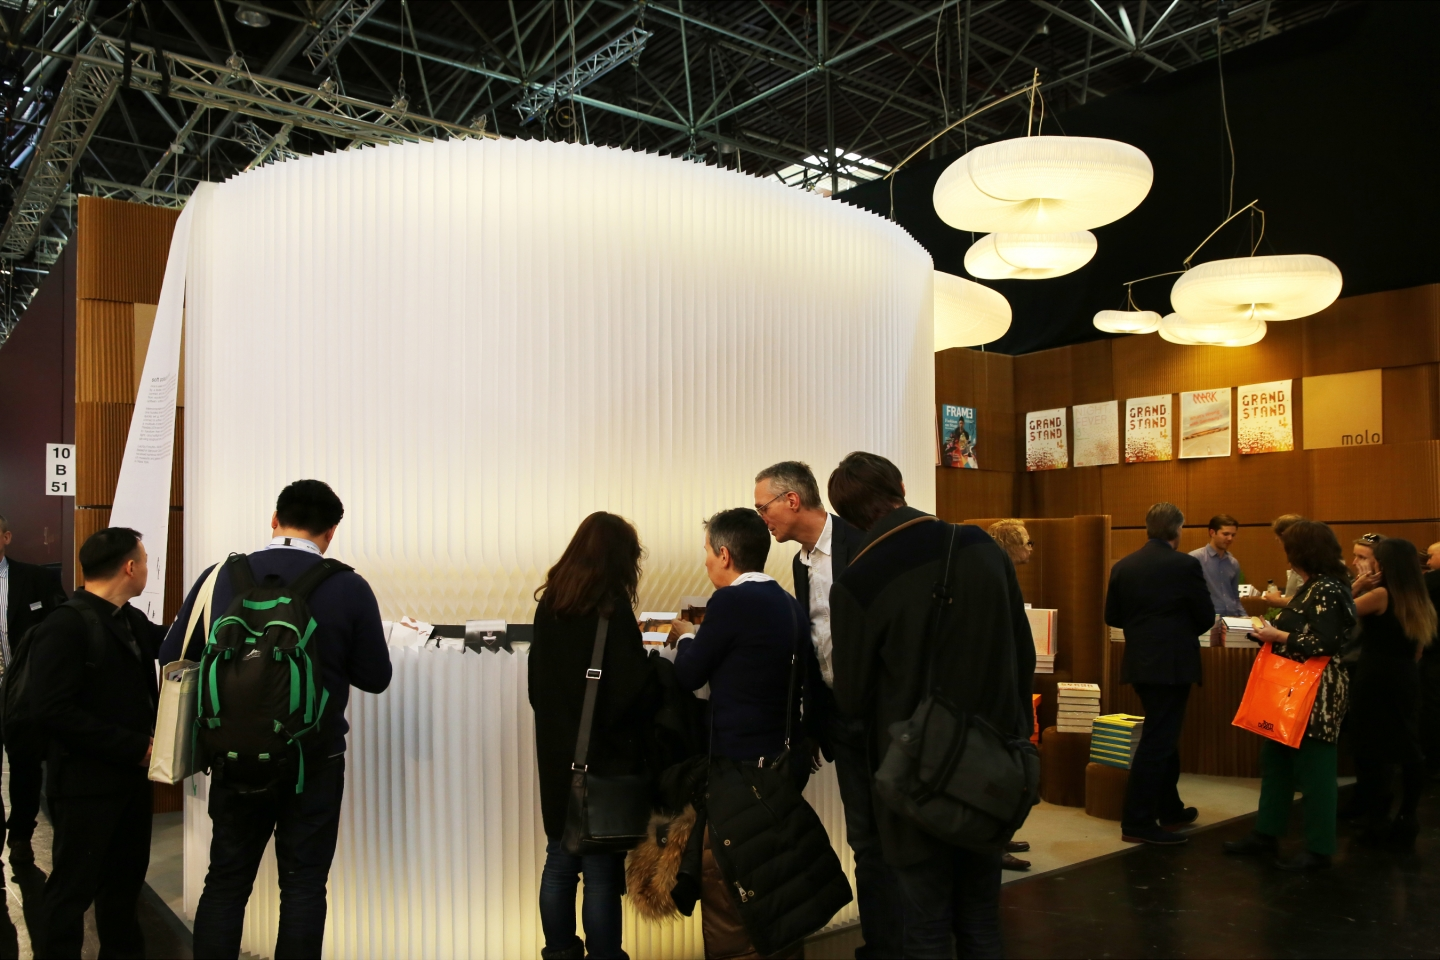 modular / acoustic portable wall partitions, paper chairs and furniture and cloud pendant lighting by molo - a product display for FRAME Magazine made from the soft collection